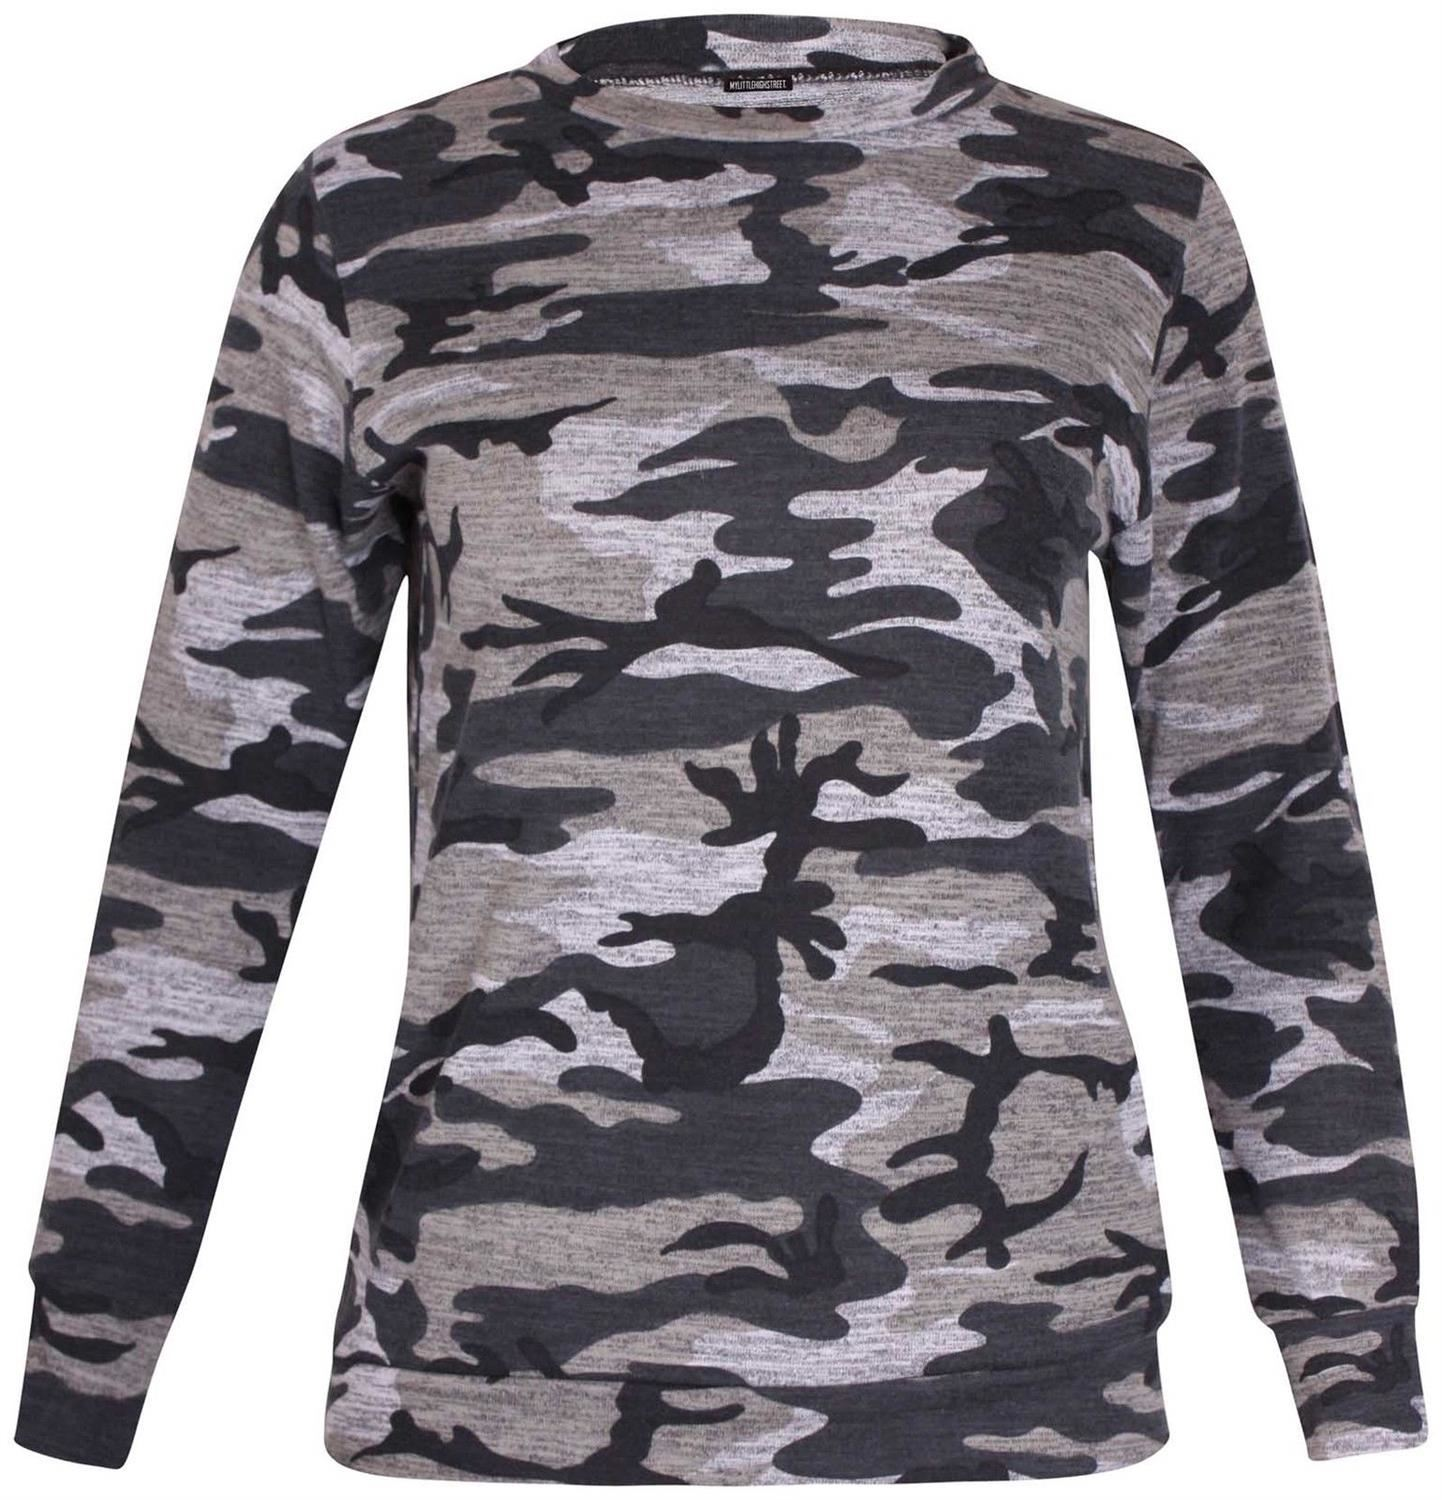 New-Womens-Plus-Size-Army-Sweatshirt-Top-Jogging-Bottom-Tracksuit-Set-16-28 thumbnail 3